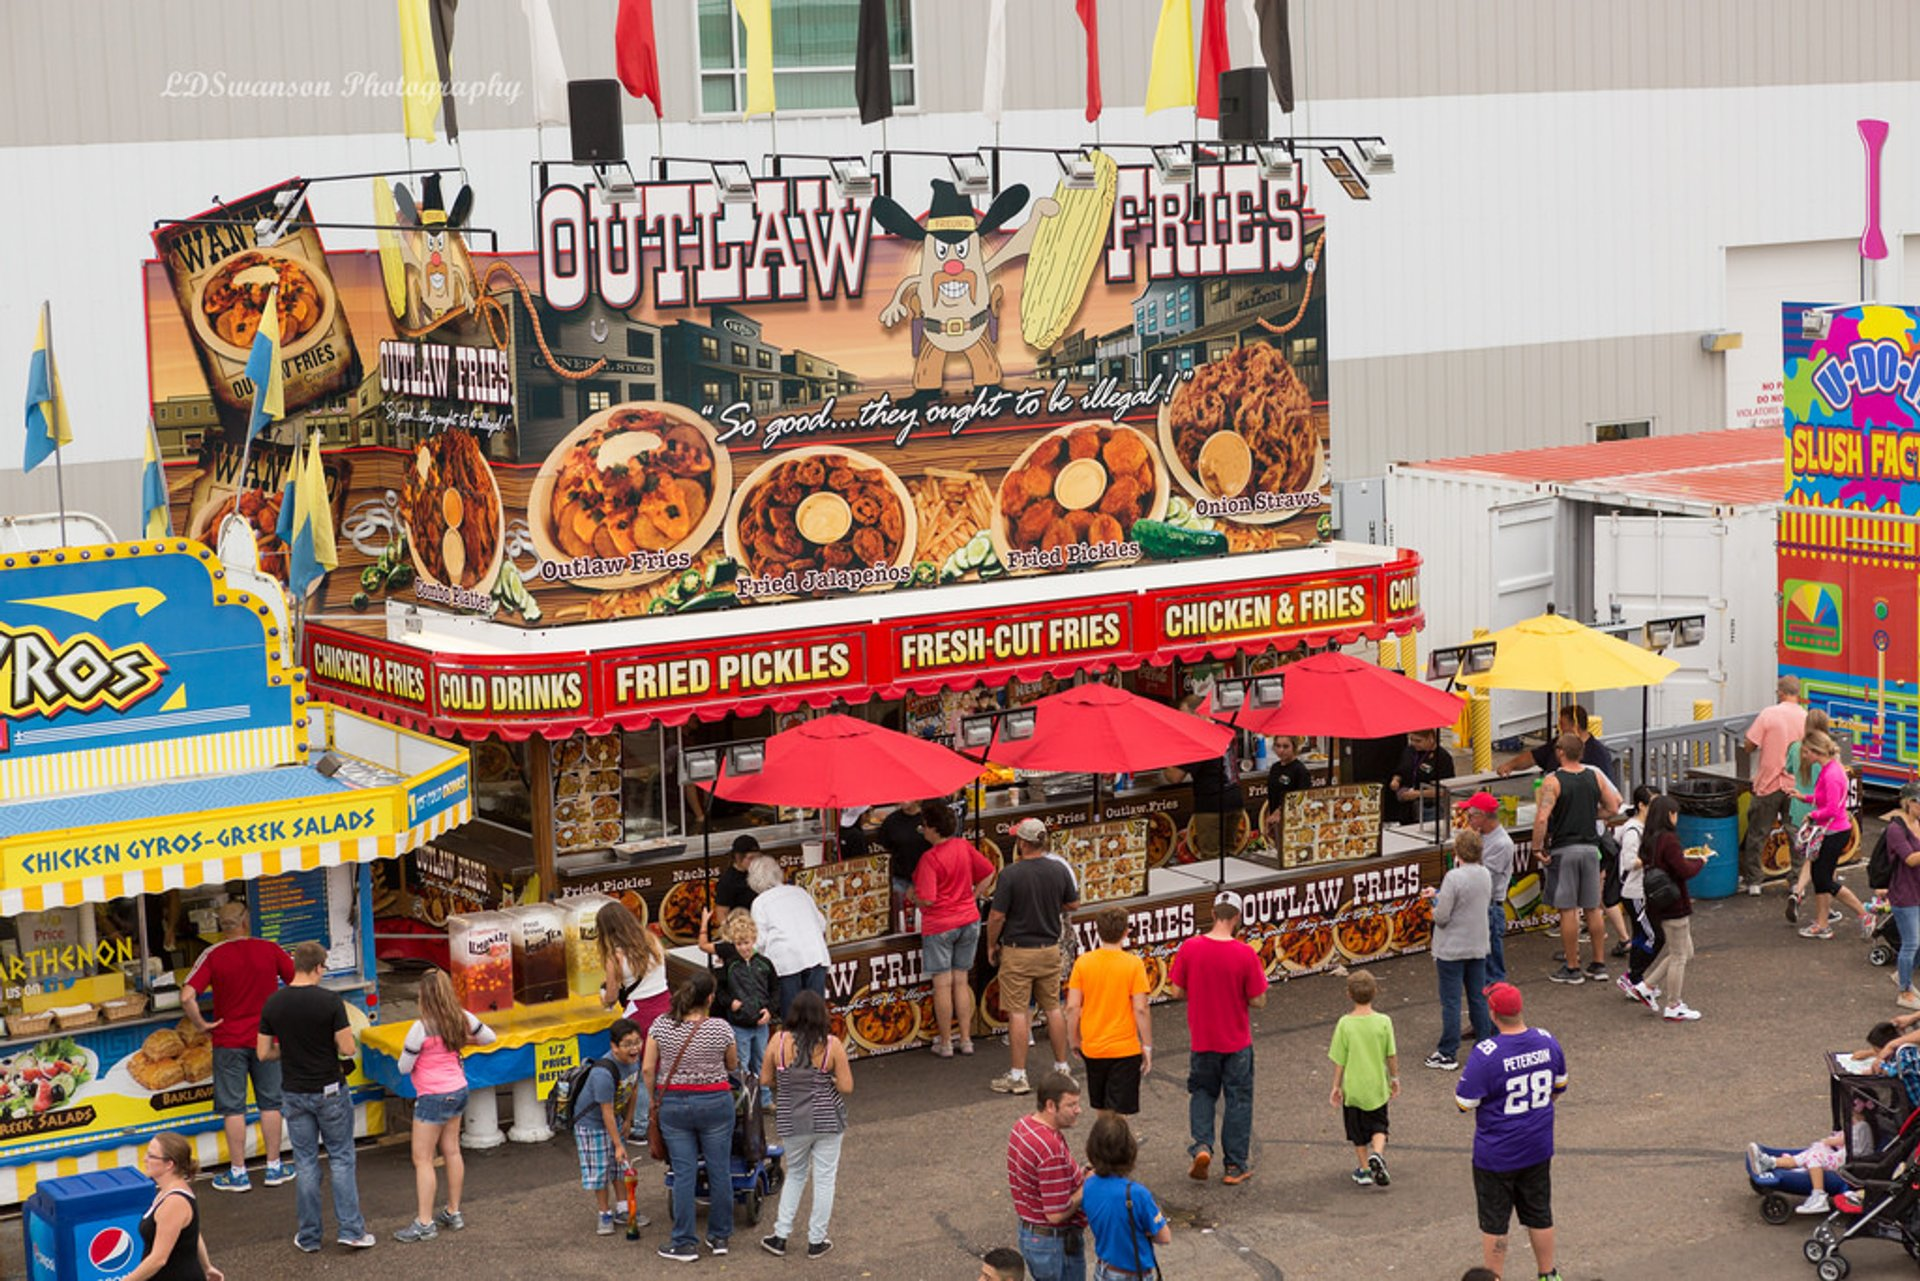 Nebraska State Fair in Midwest - Best Season 2020